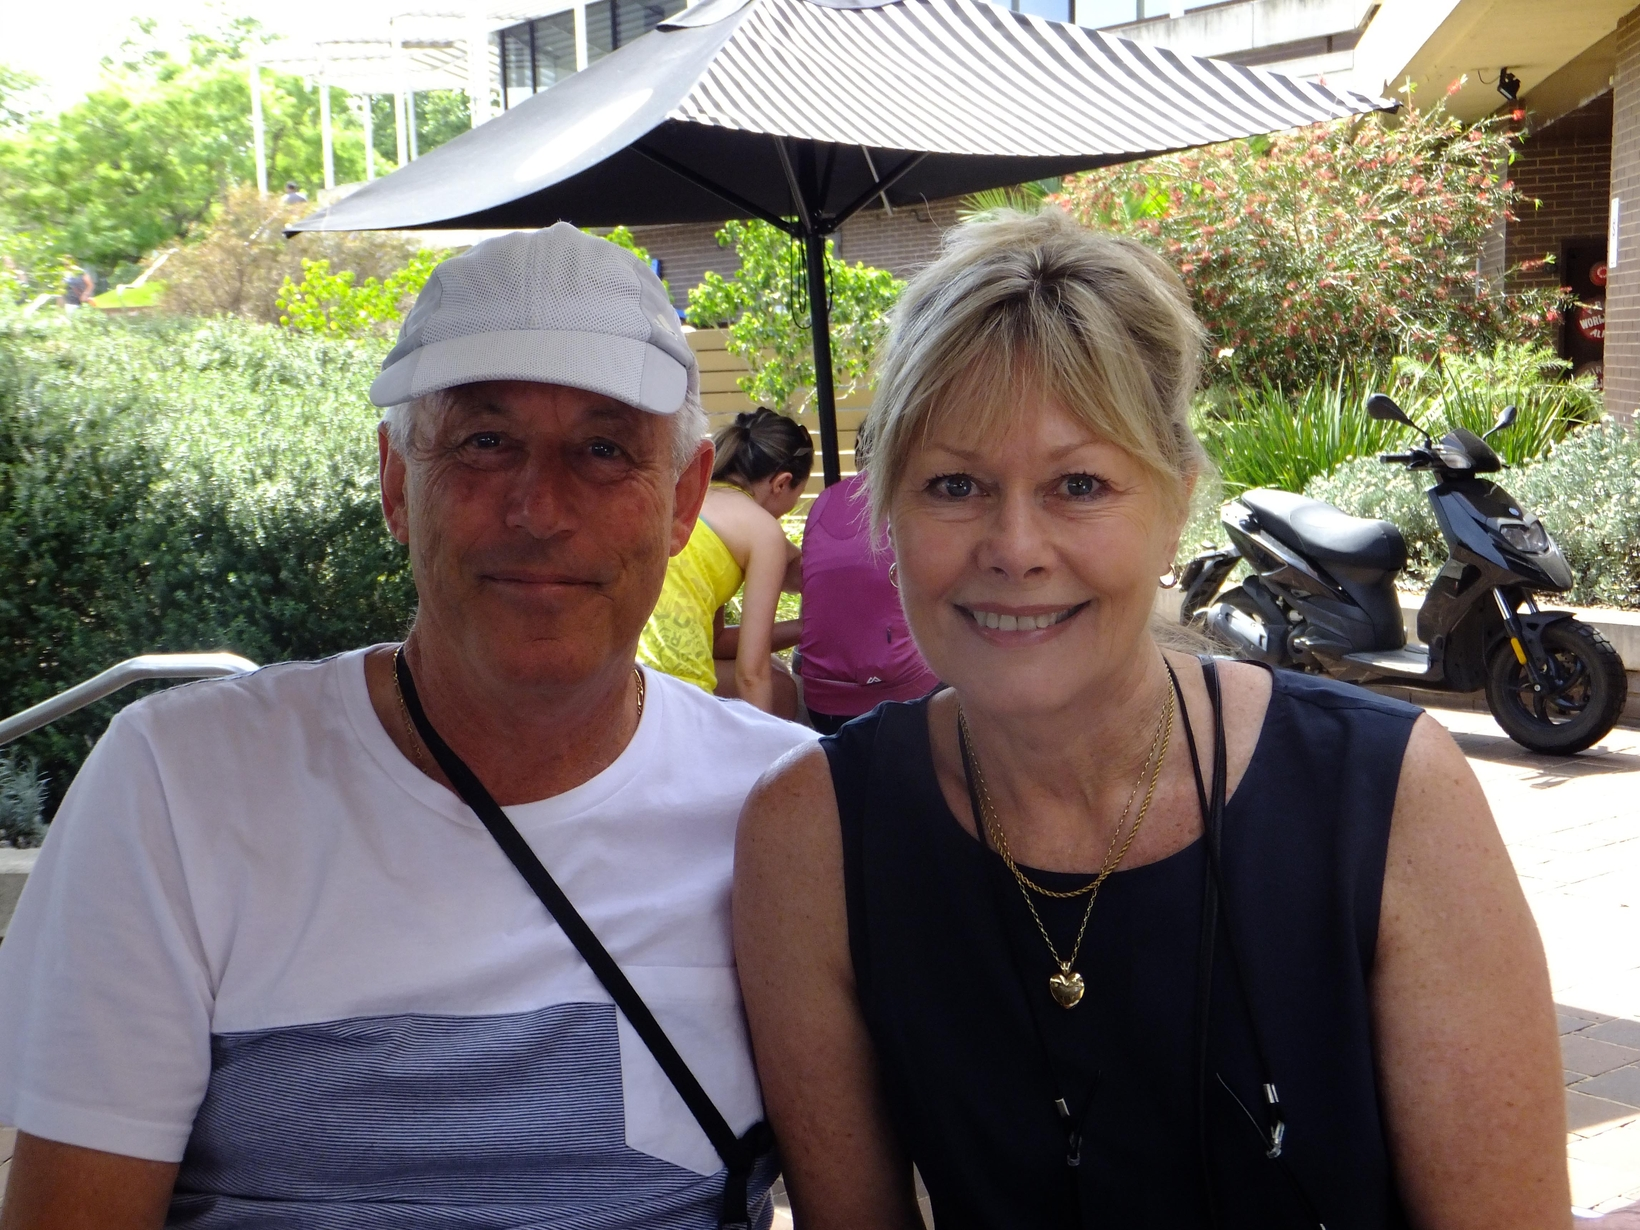 Roger & Ann from Tairua, New Zealand